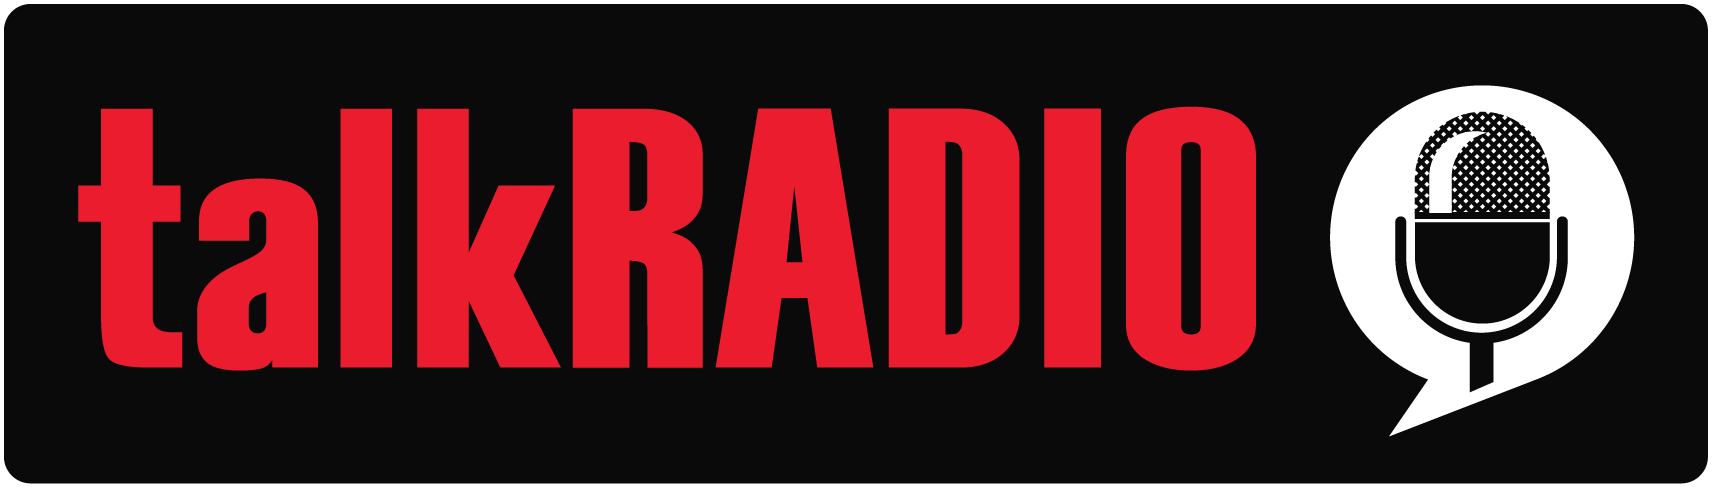 talkRADIO logo - long